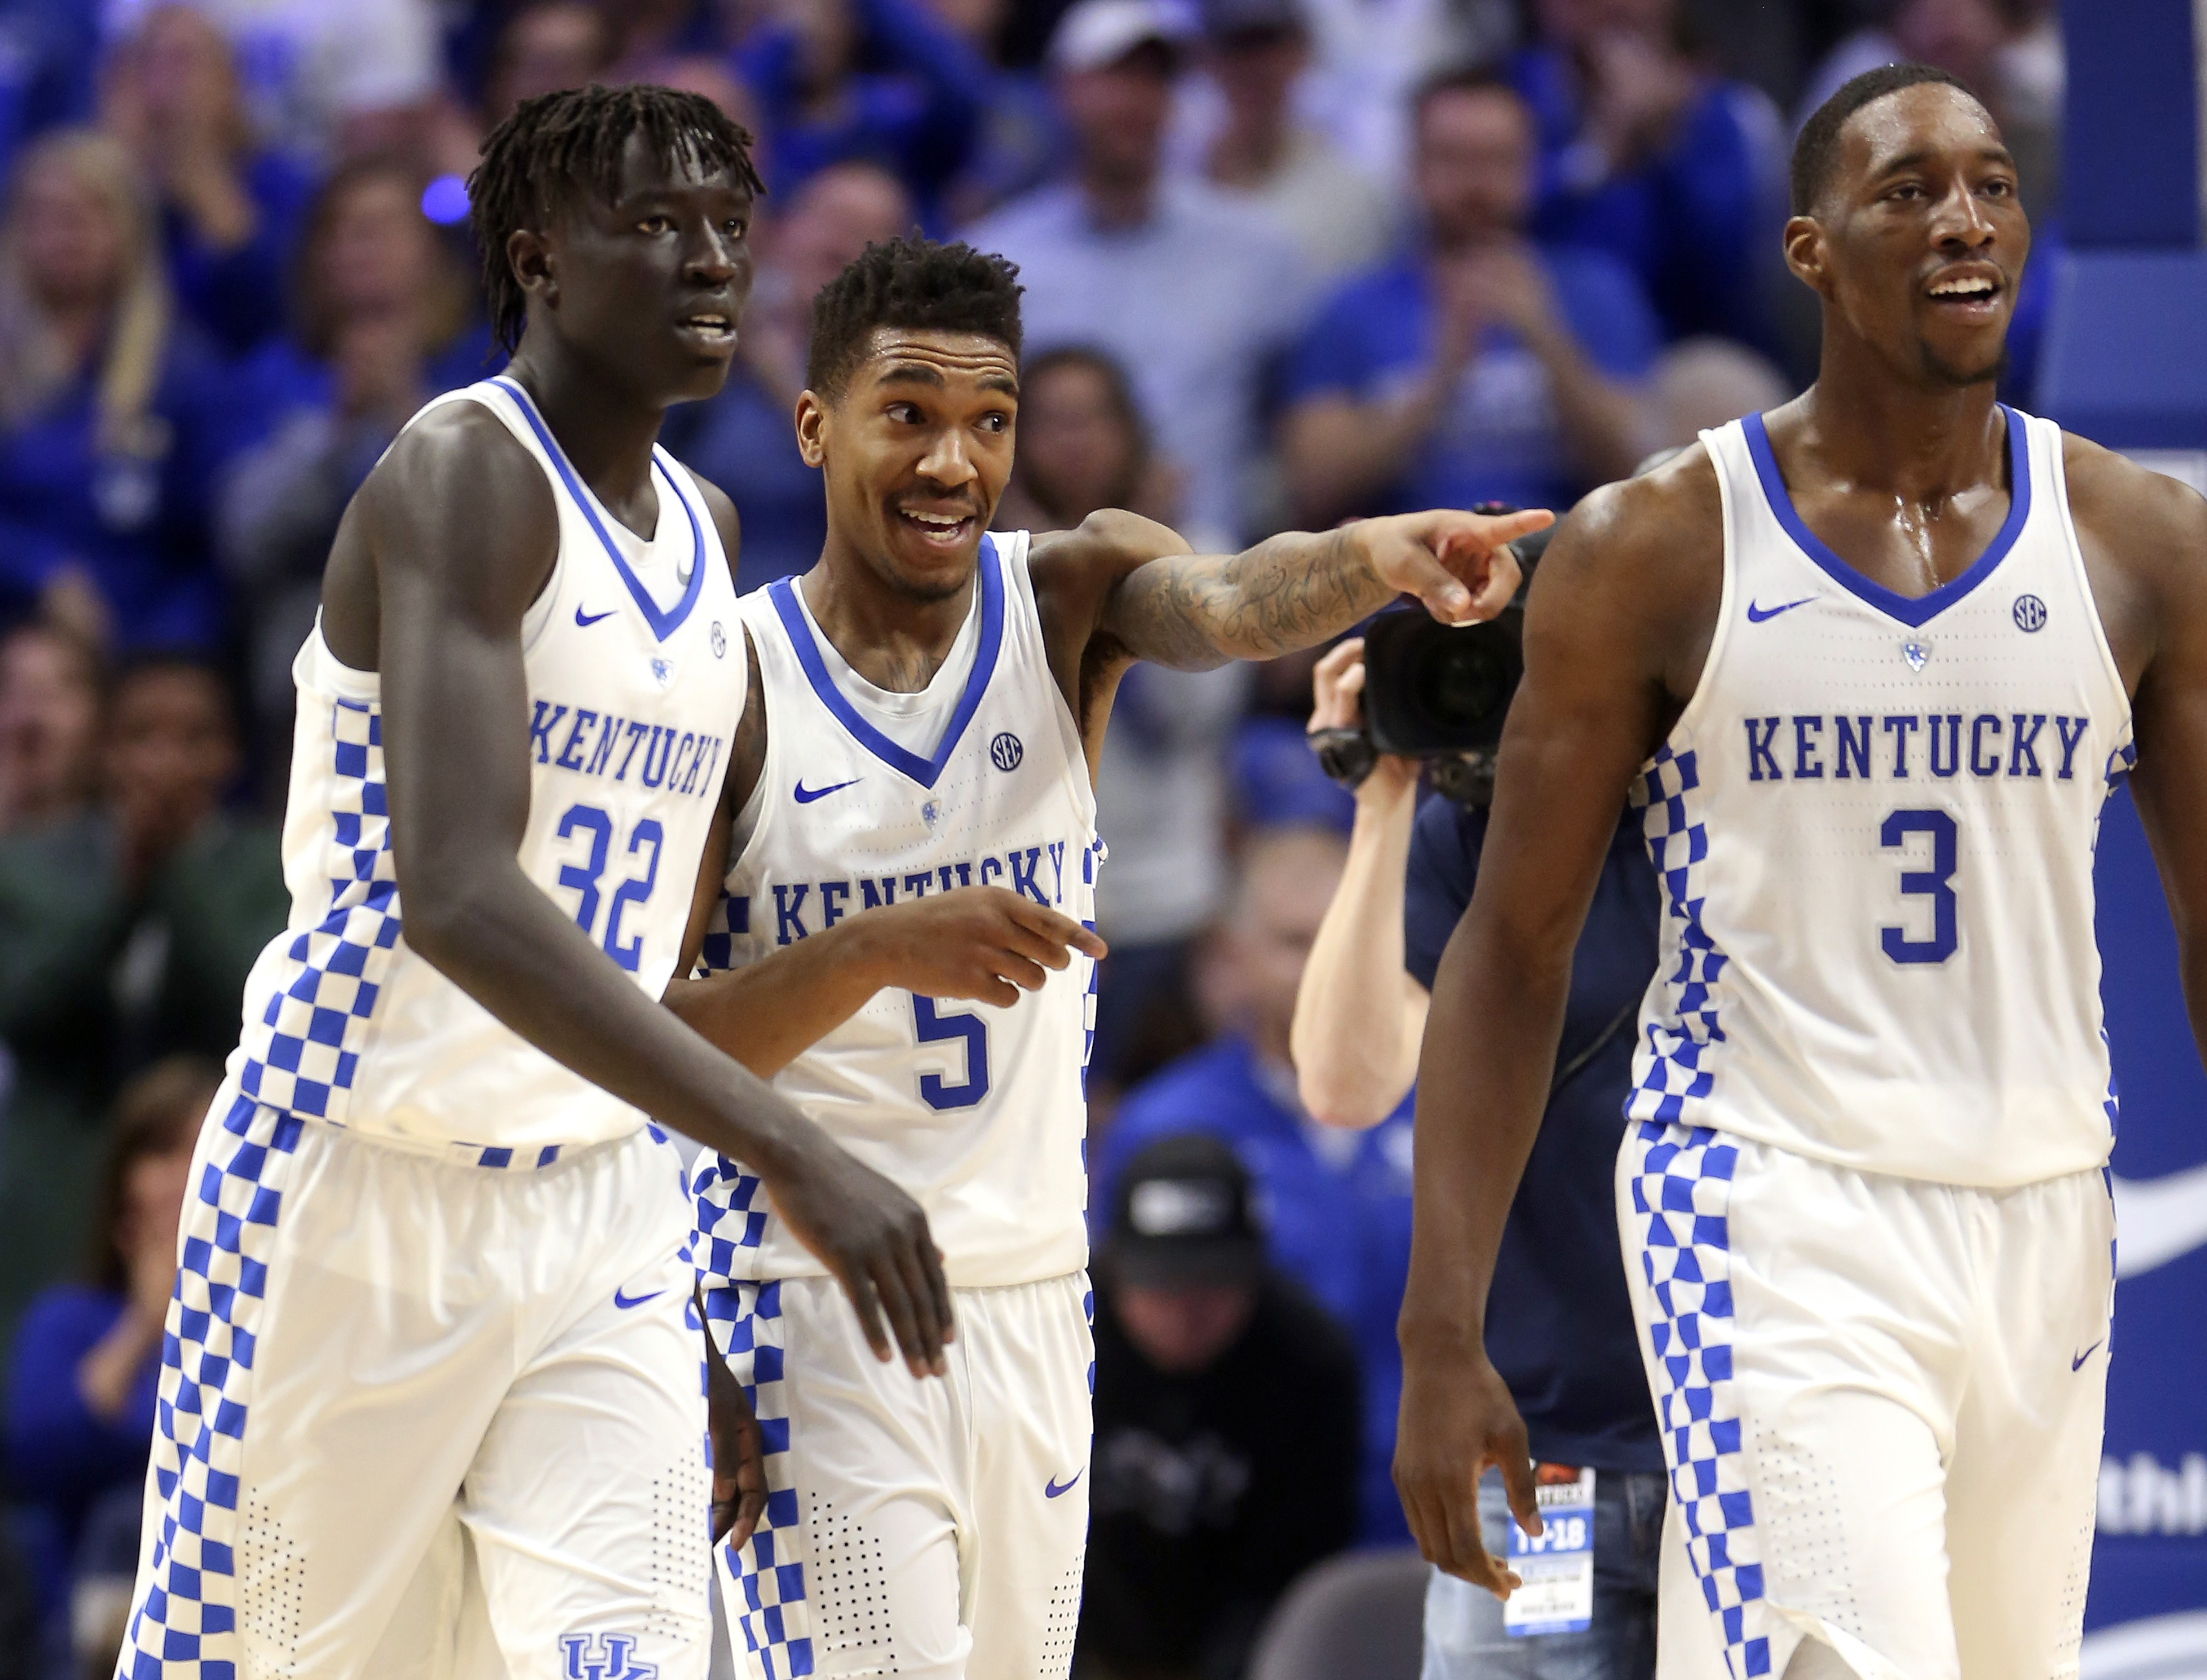 Kentucky Wildcats Basketball: College Basketball Rankings: Projected Top 25 For Week 17